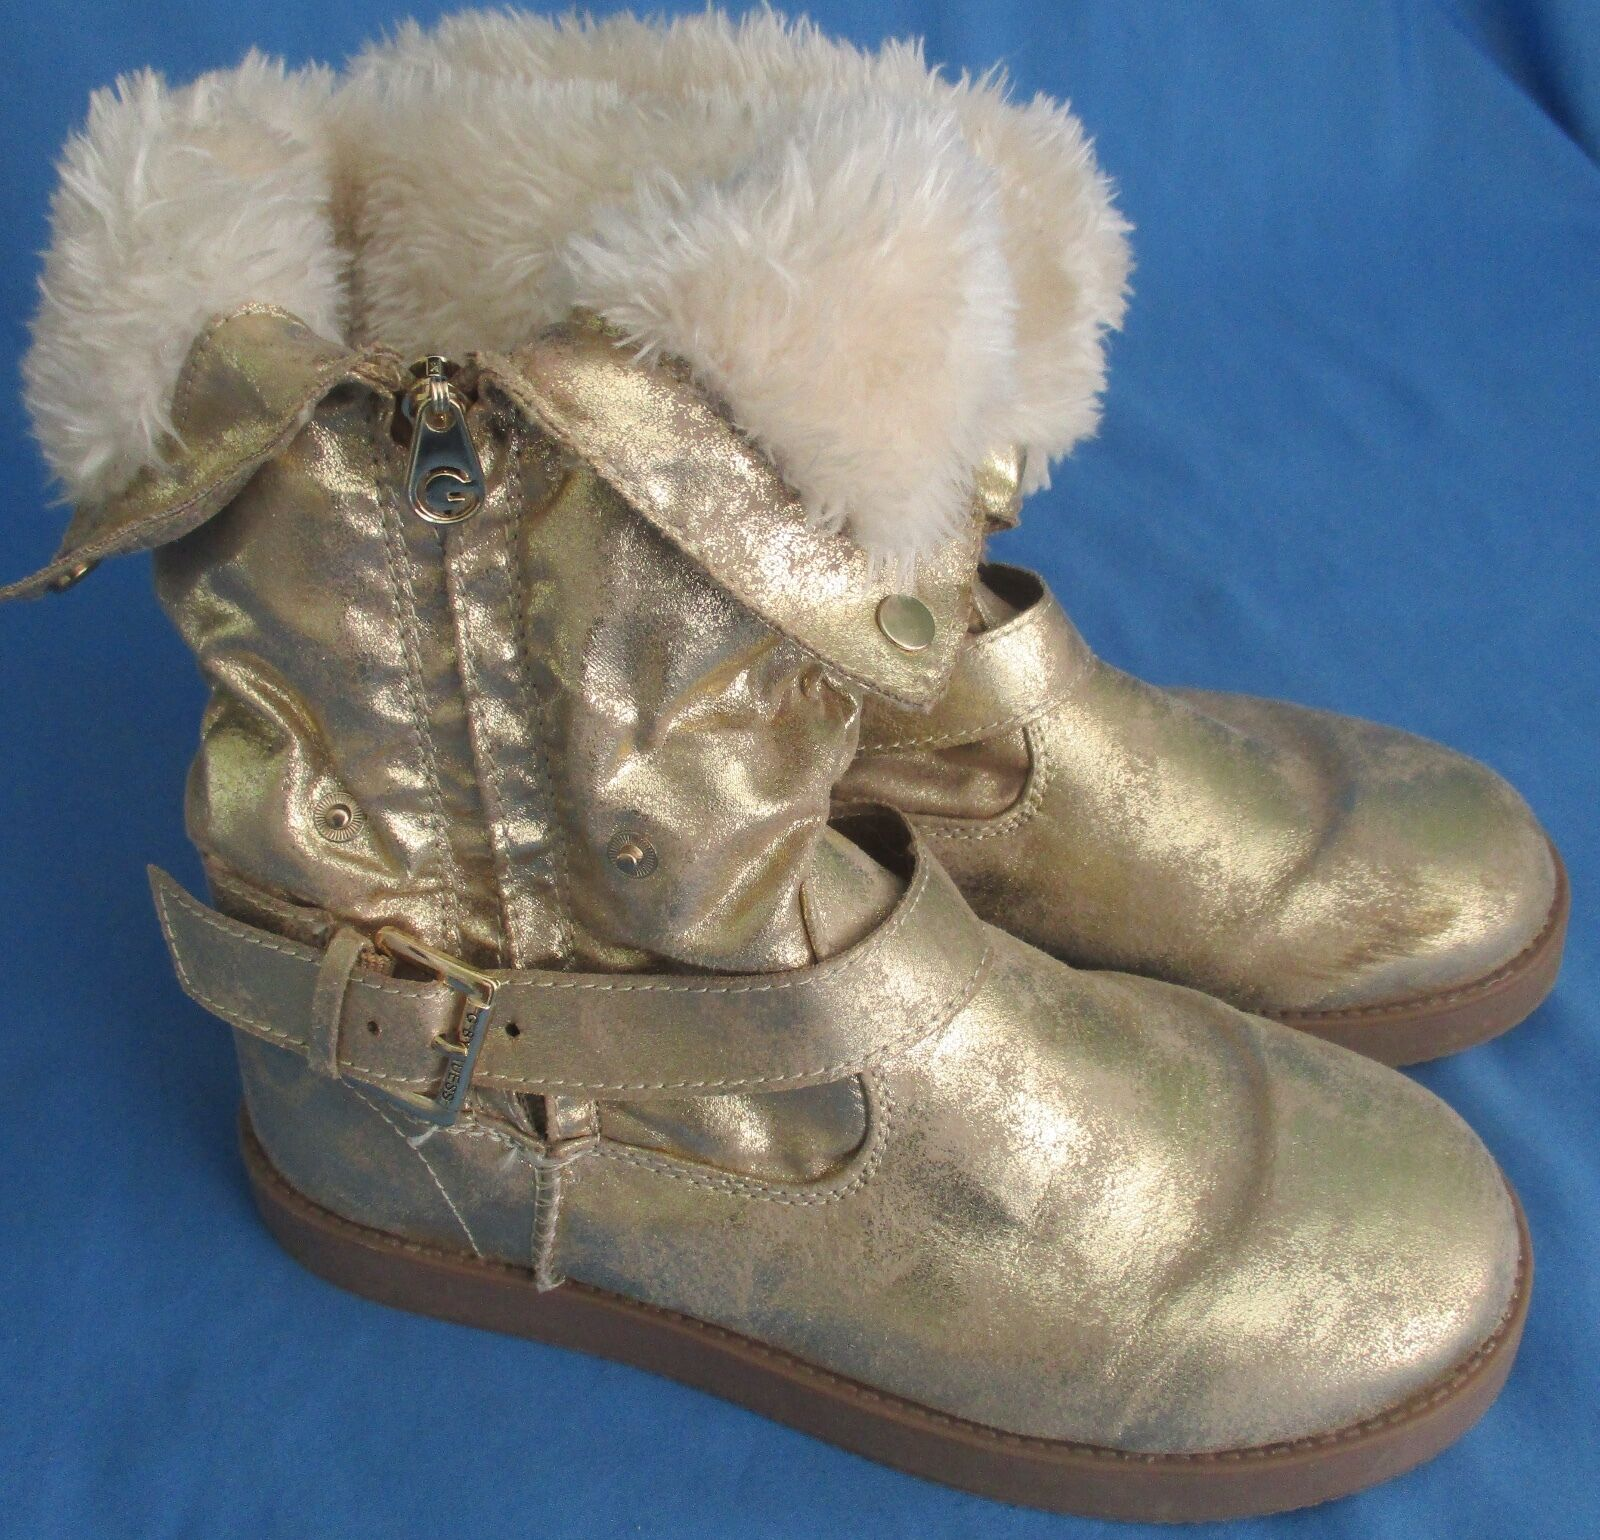 Women's G by Guess Gold Boots Size 7M Faux Fur Lined